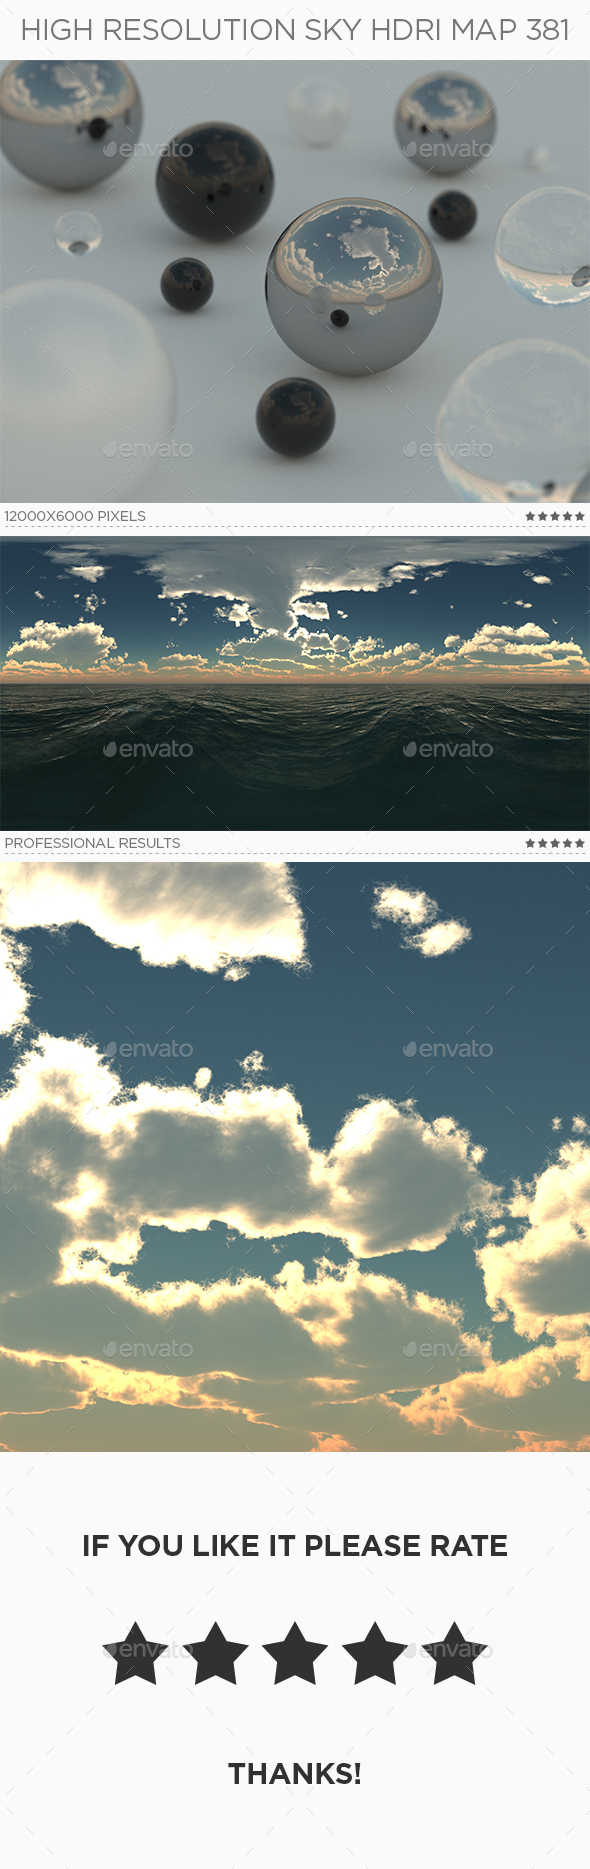 High Resolution Sky HDRi Map 381 - 3DOcean Item for Sale